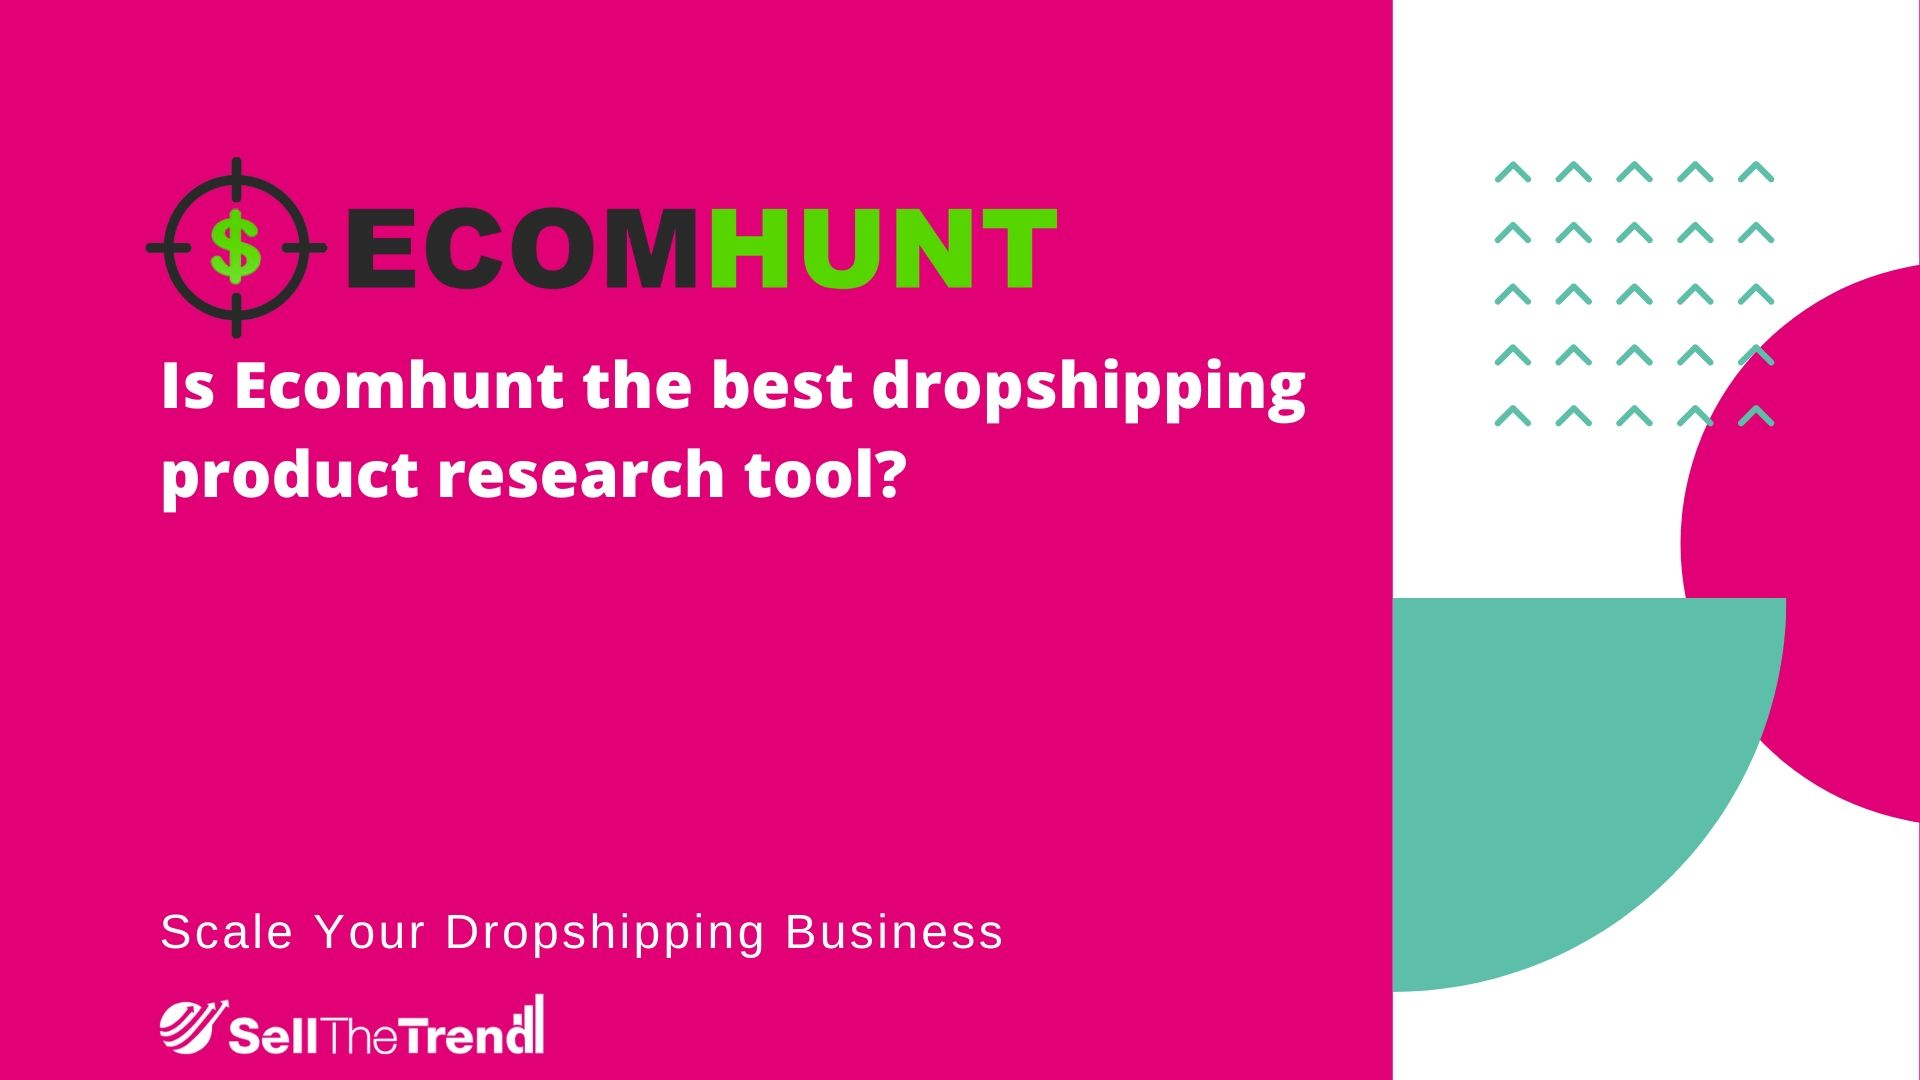 Is Ecomhunt the best dropshipping product research tool?